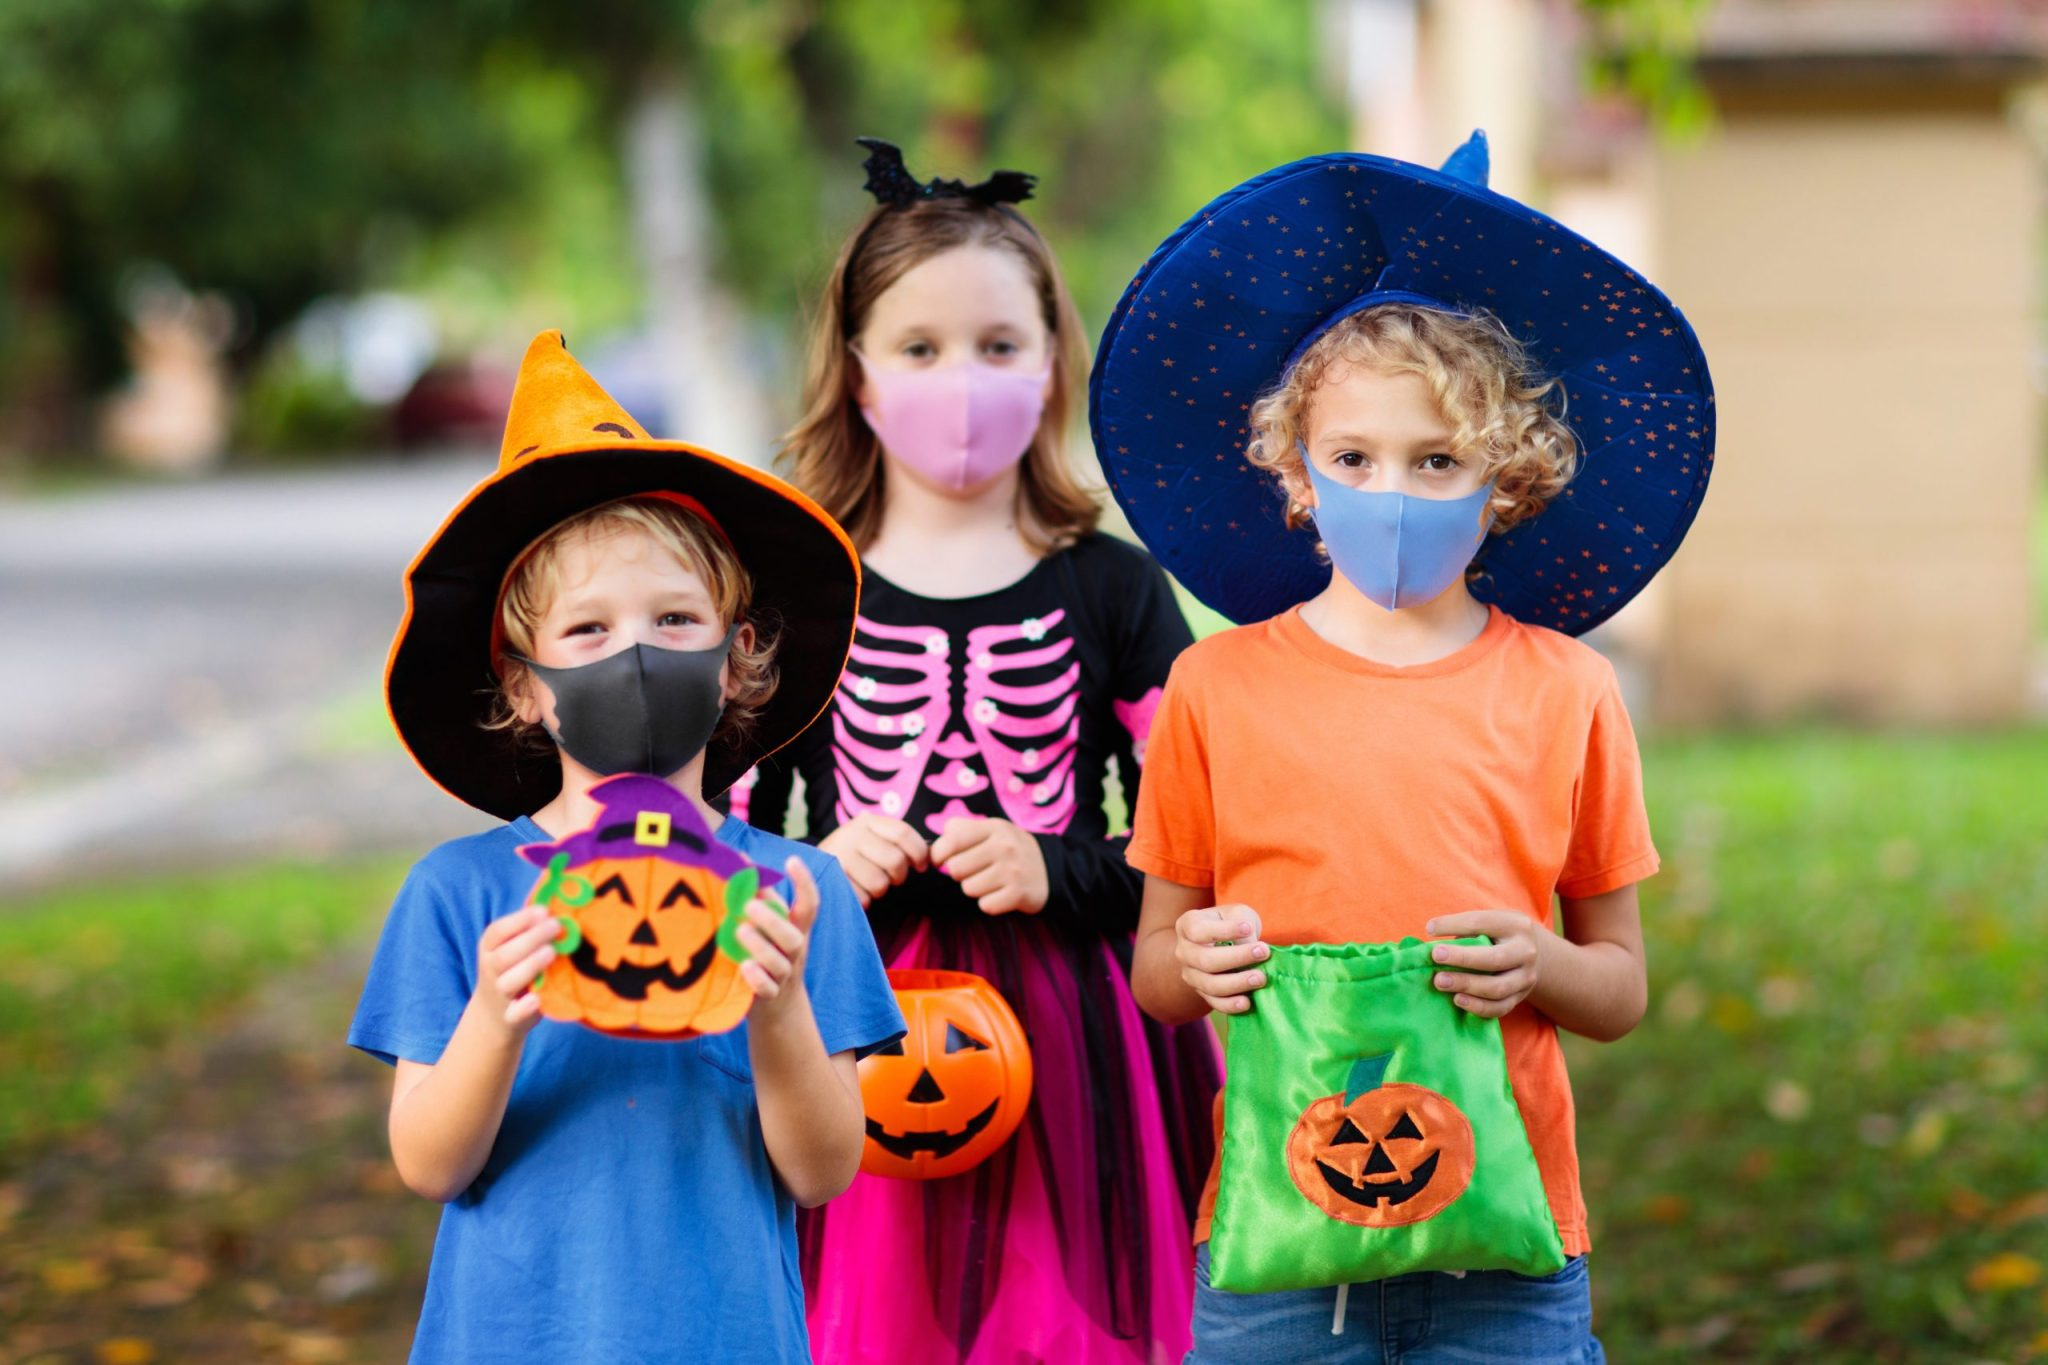 Trick or treaters with masks on